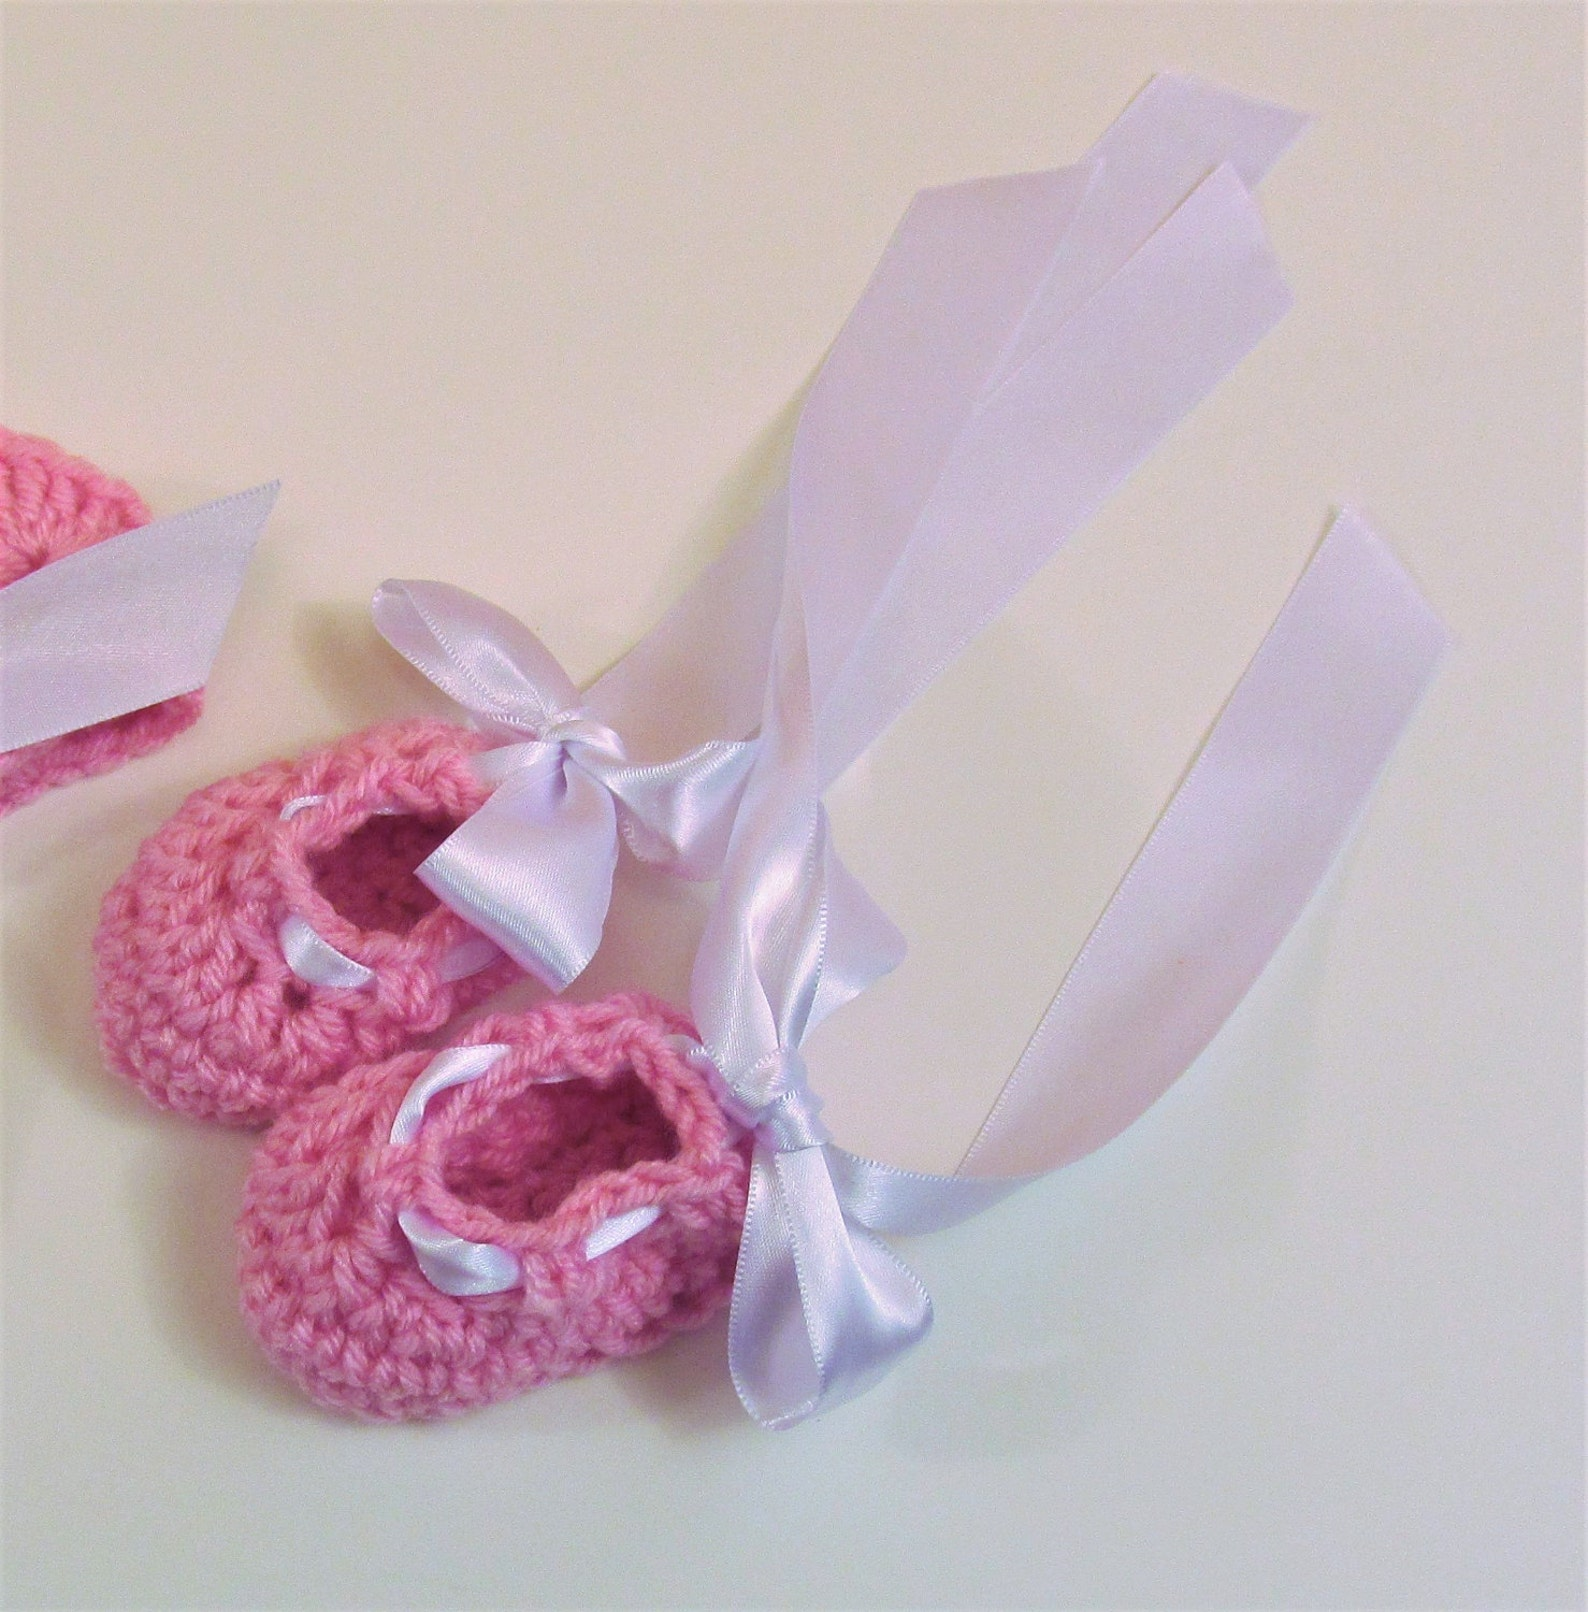 ballet slippers with white ribbon. sizes newborn to 6 months crocheted, photo prop, gender reveal, shower gift or for coming hom